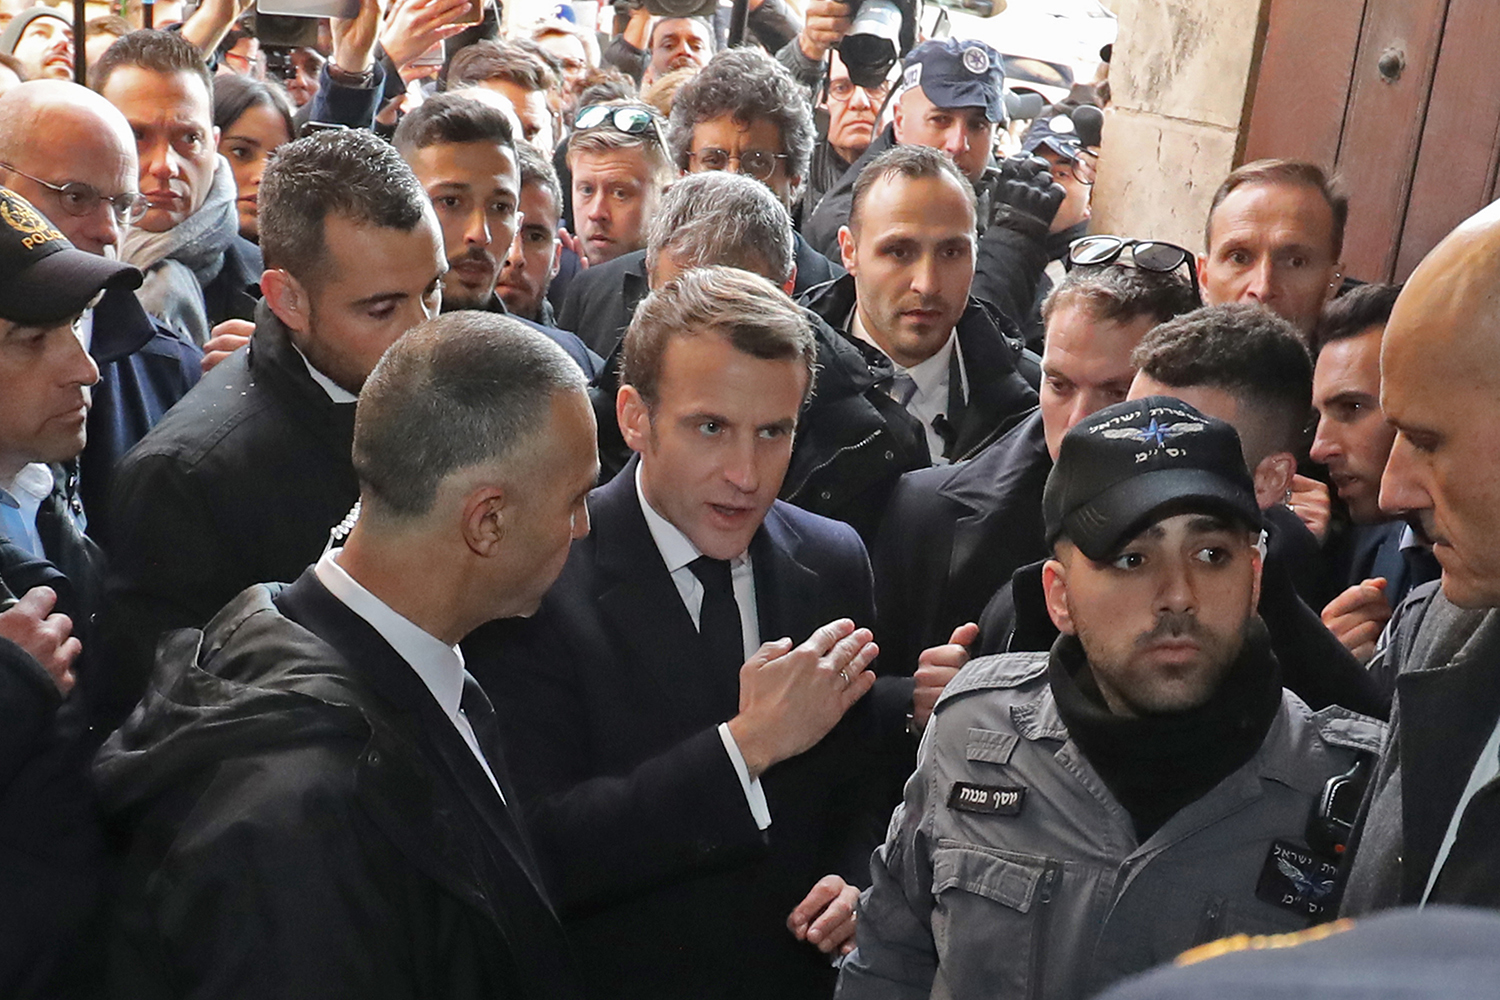 French President Emmanuel Macron asks the Israeli police to leave the 12th century Church of Saint Anne in the old city of Jerusalem on Jan. 22. World leaders are traveling to Israel to mark 75 years since the Red Army liberated Auschwitz, the extermination camp where the Nazis killed more than a million Jews. LUDOVIC MARIN/AFP via Getty Images